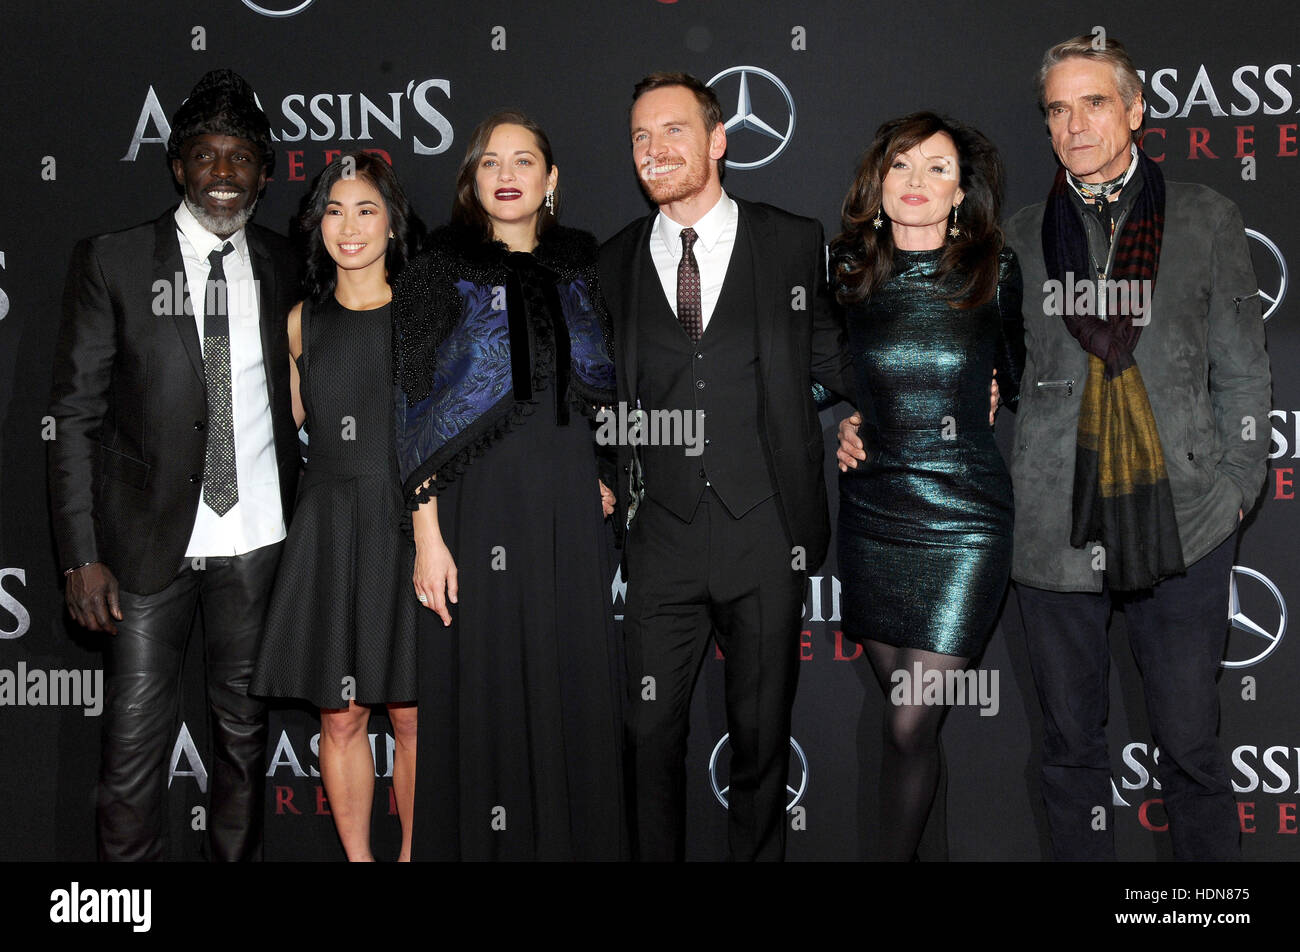 New York, USA. 13. Dezember 2016. Michael K. Williams, Marion Cotillard, Michael Fassbender, Essie Davis und Jeremy Stockbild